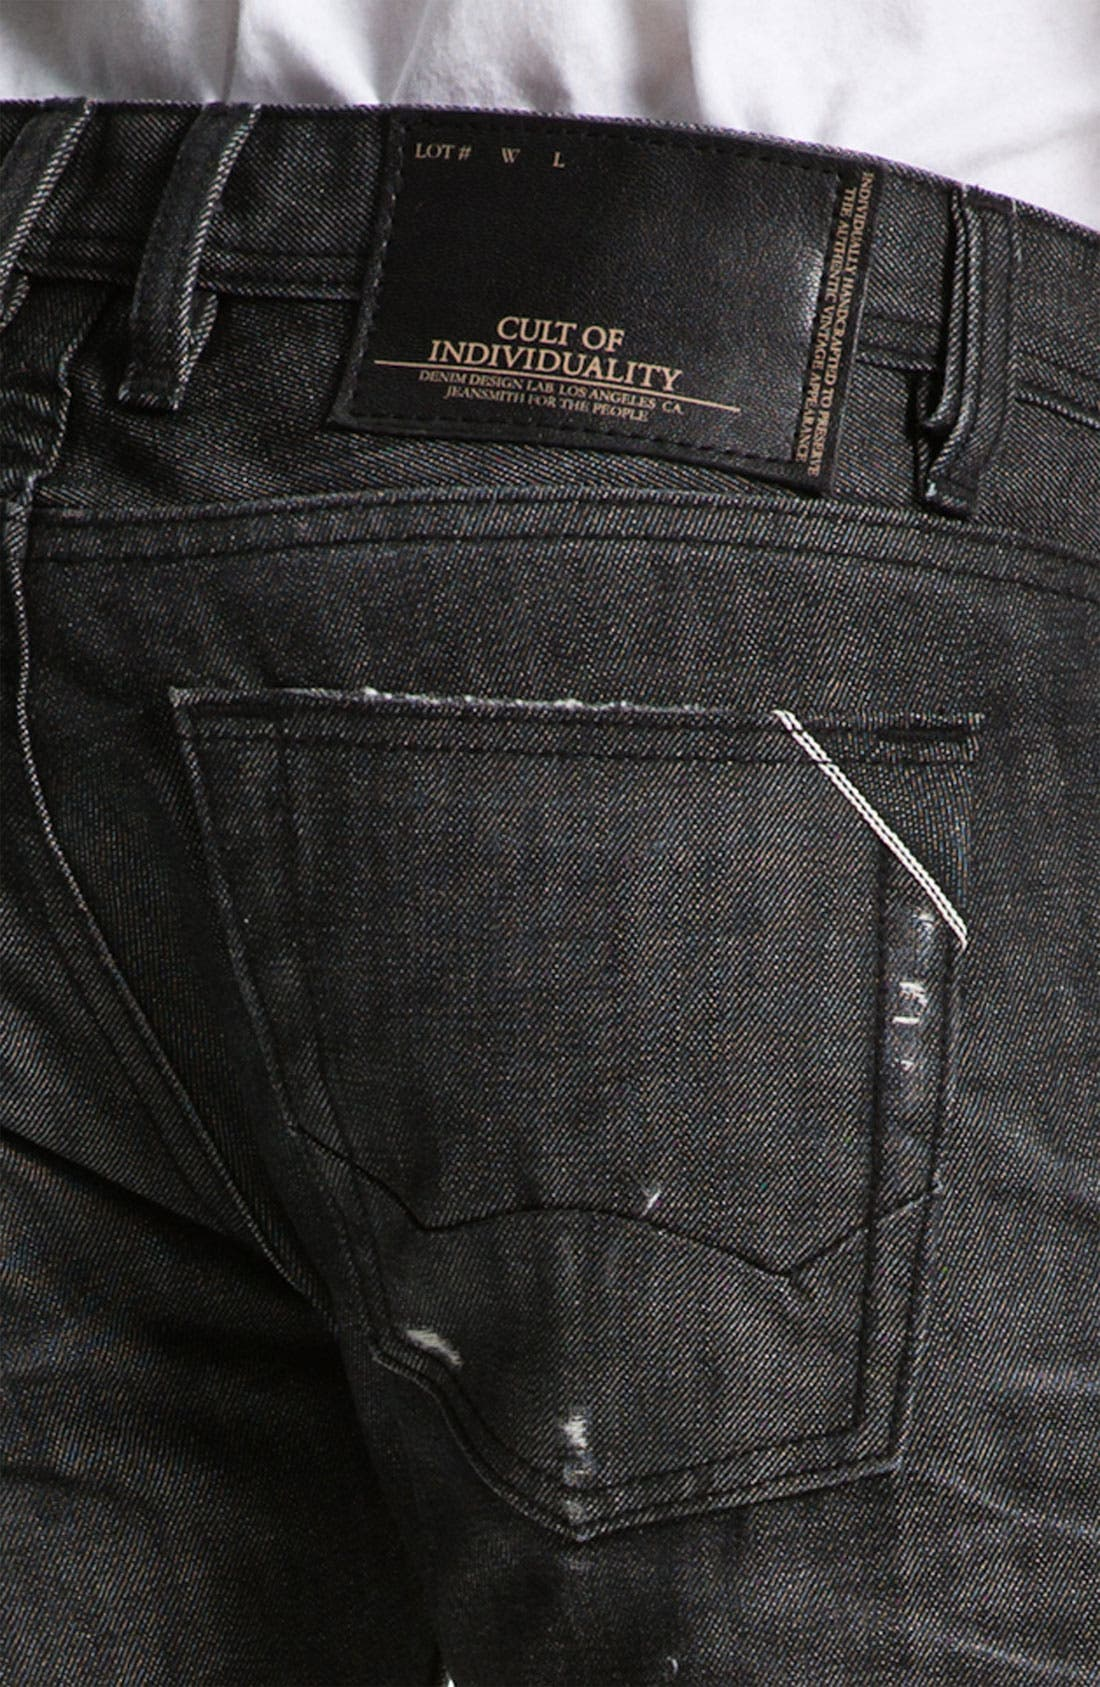 Alternate Image 4  - Cult of Individuality 'Hagen' Relaxed Straight Leg Jeans (Black)